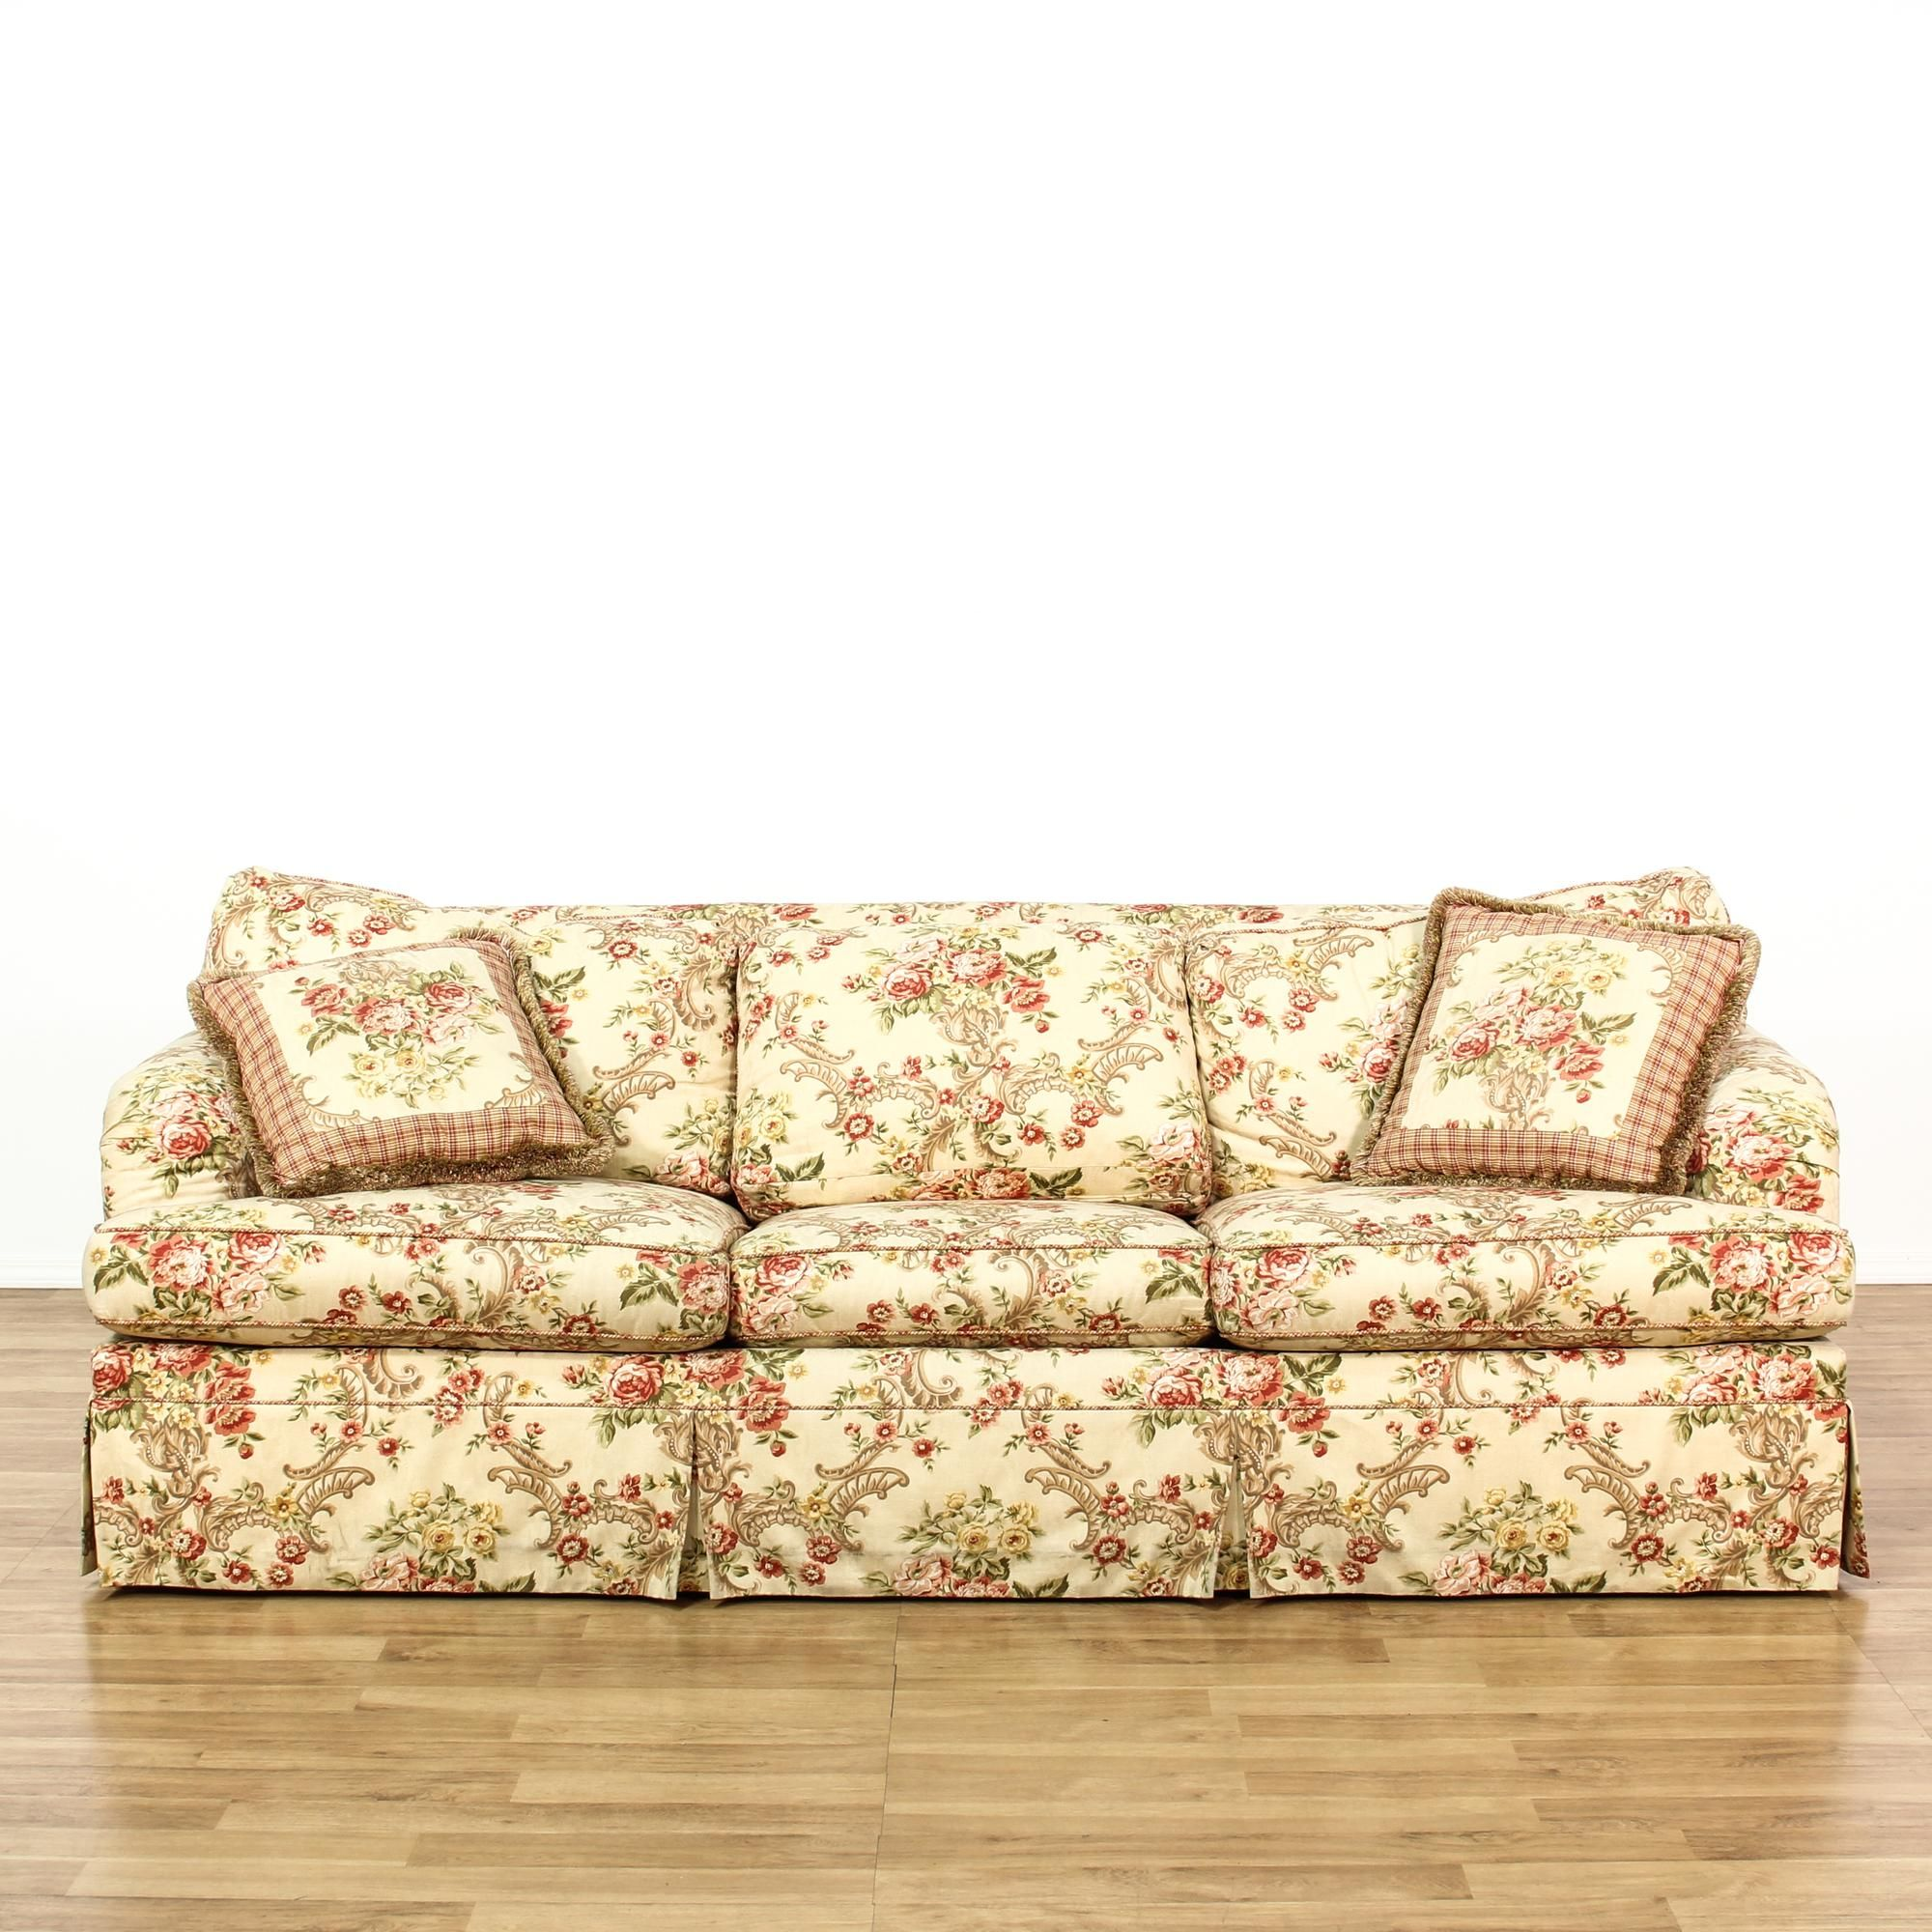 Stupendous This Sleeper Sofa Is Upholstered In A Rose And Cream Floral Dailytribune Chair Design For Home Dailytribuneorg